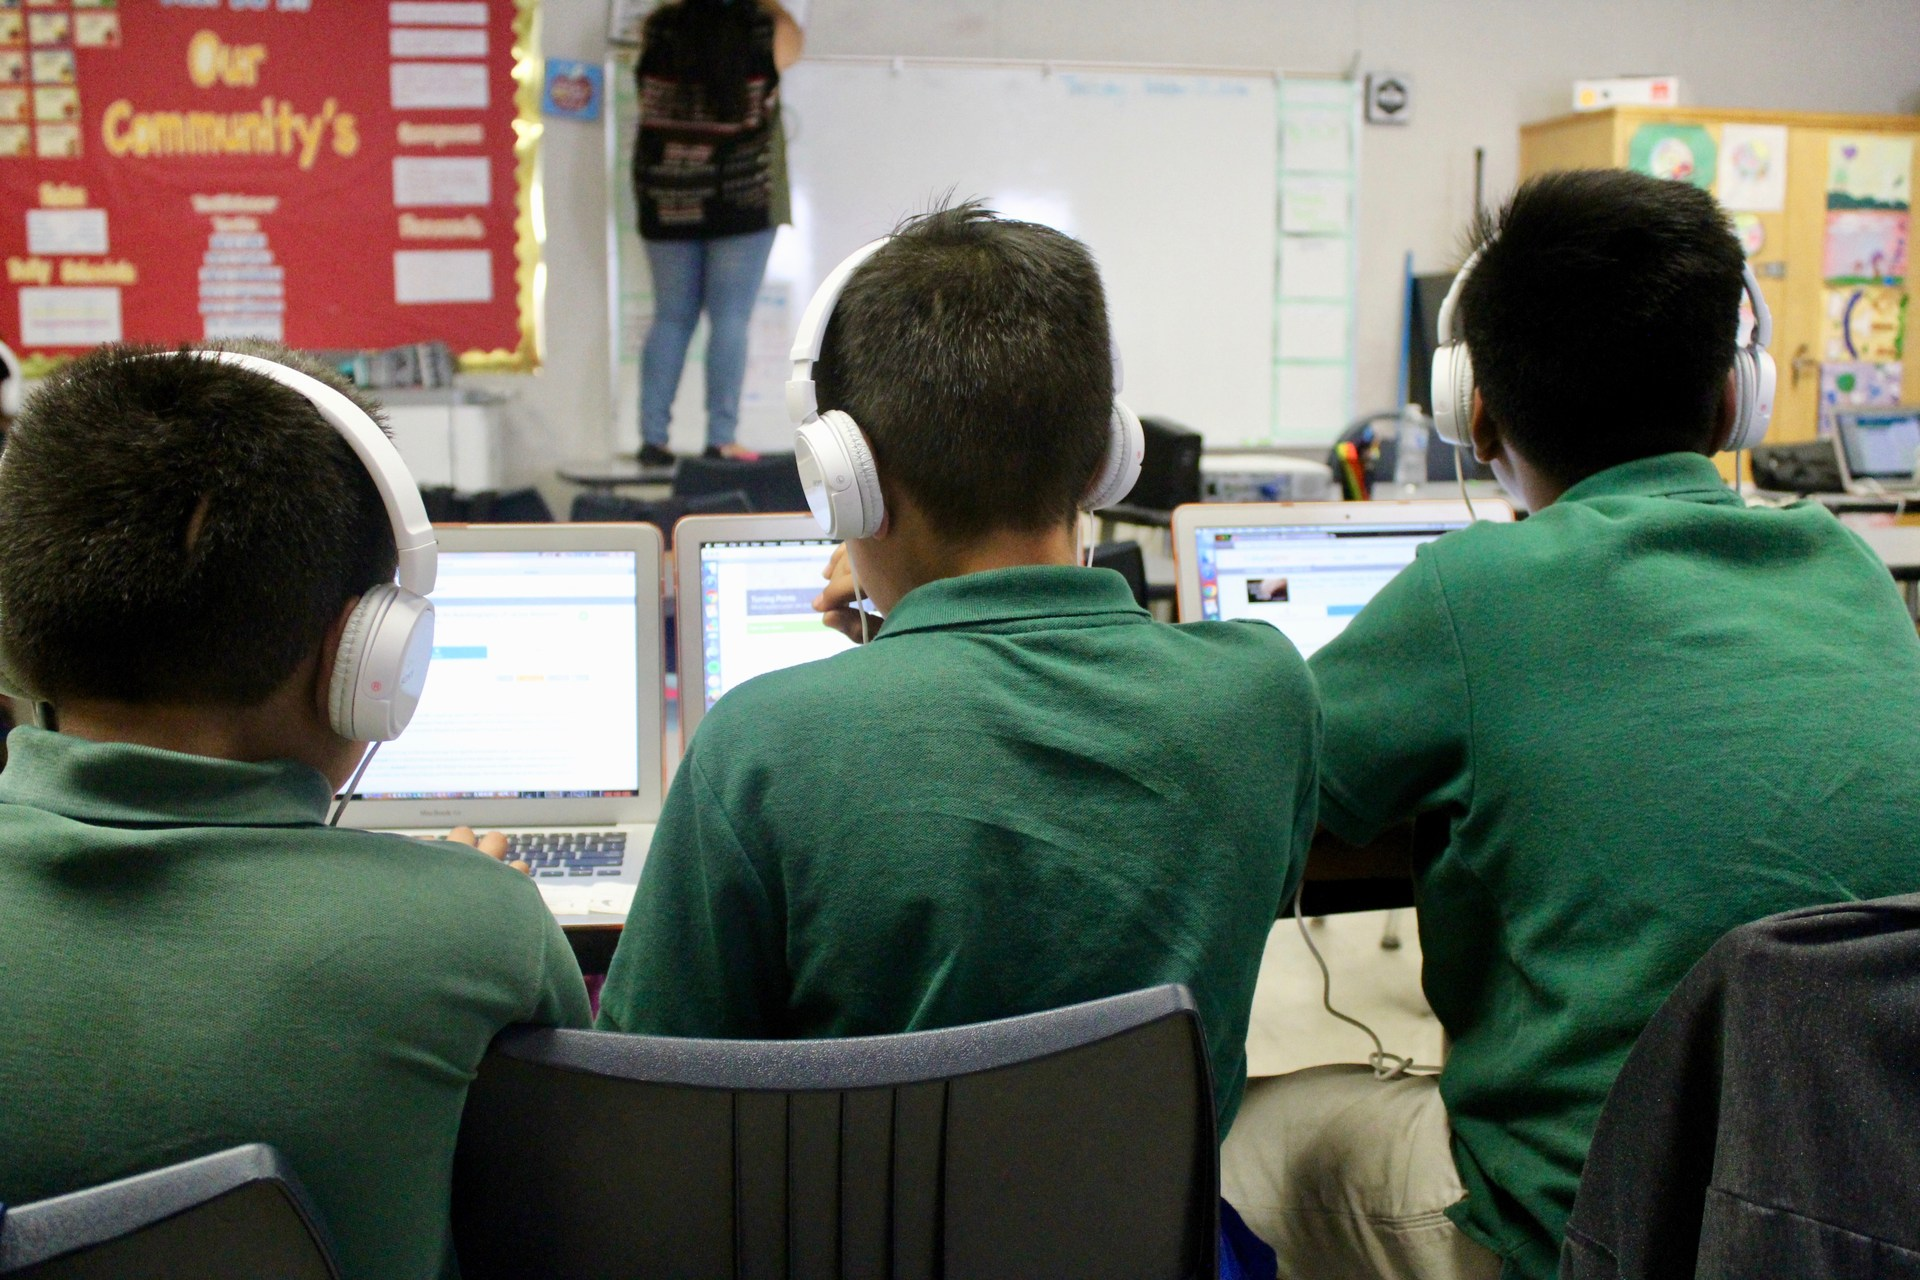 students wear headphones as they work on computers